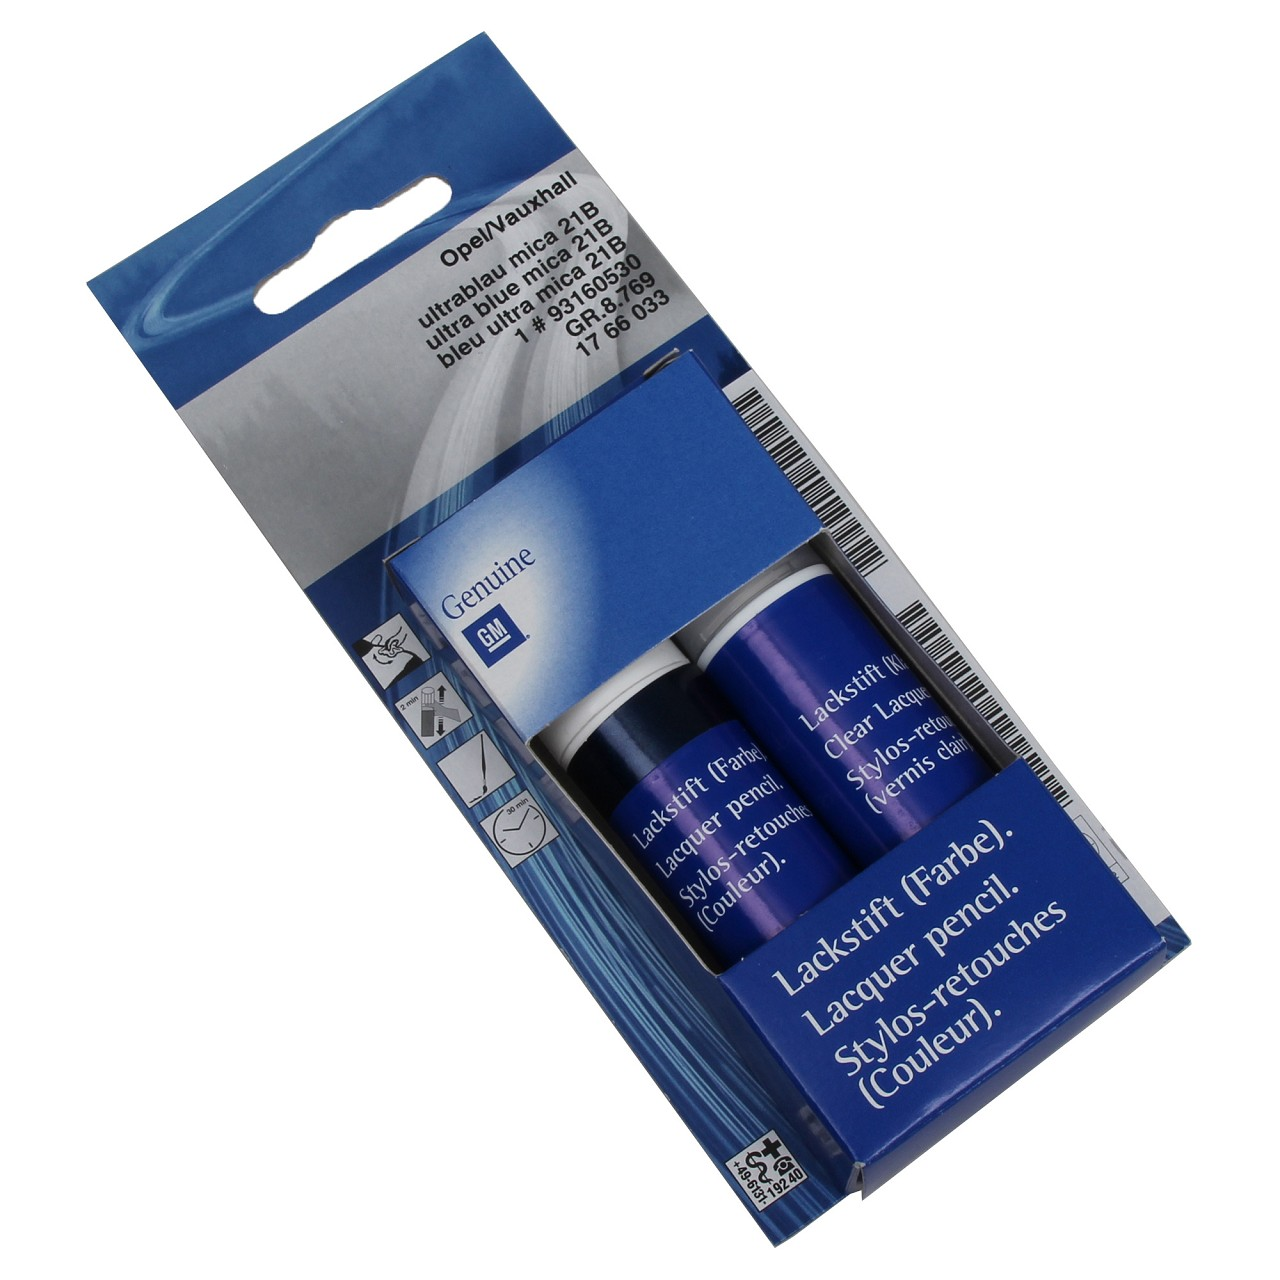 ORIGINAL GM Opel Lackstift Set ULTRABLAU BLAU 21B + Klarlack 12ml 93160530